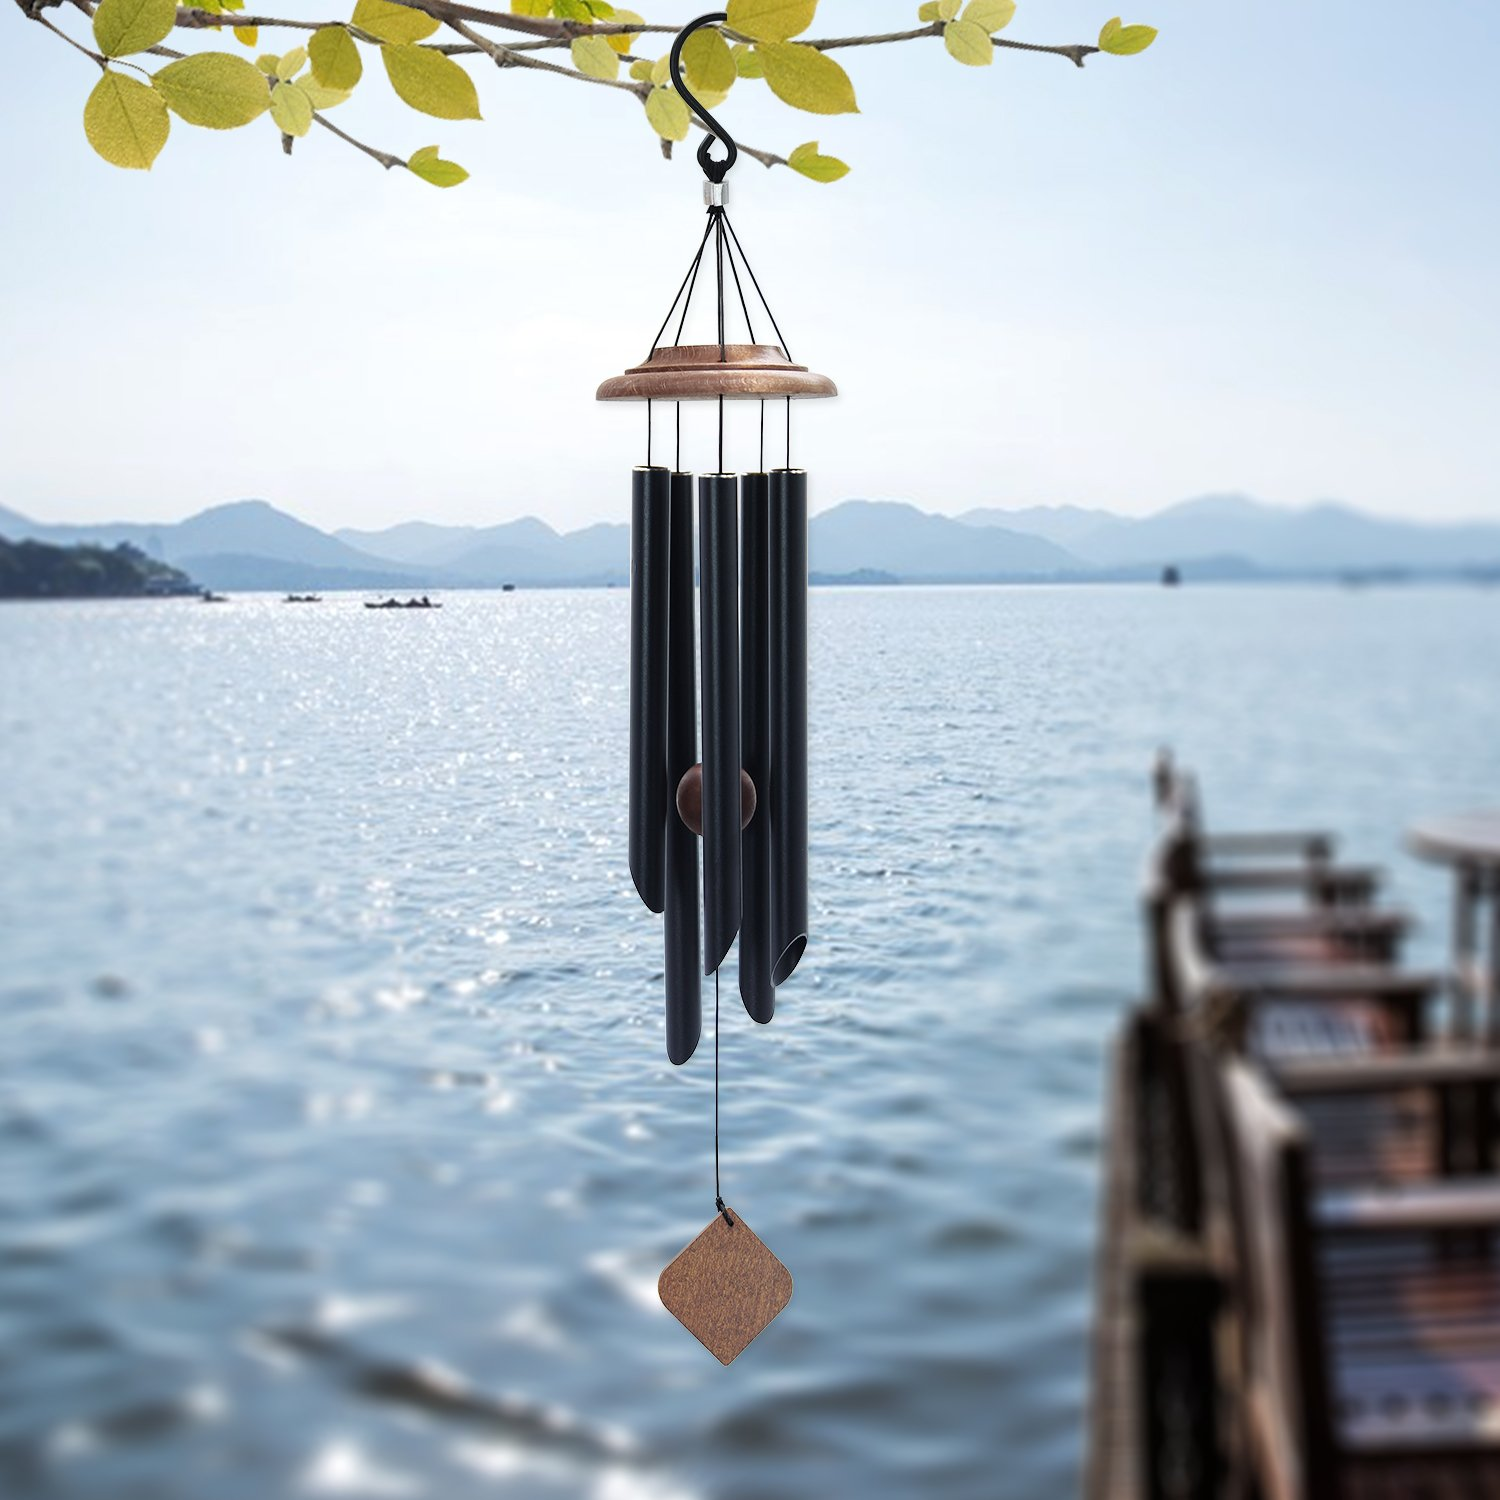 Wind Chimes Outdoor, Memorial Wind Chimes with Amazing Grace Sound, Sympathy Wind Chimes with 5 Metal Tubes, Black Wind Chime for Garden, Balcony, Patio and Home Decor, Tuned Wind Chimes (26'')